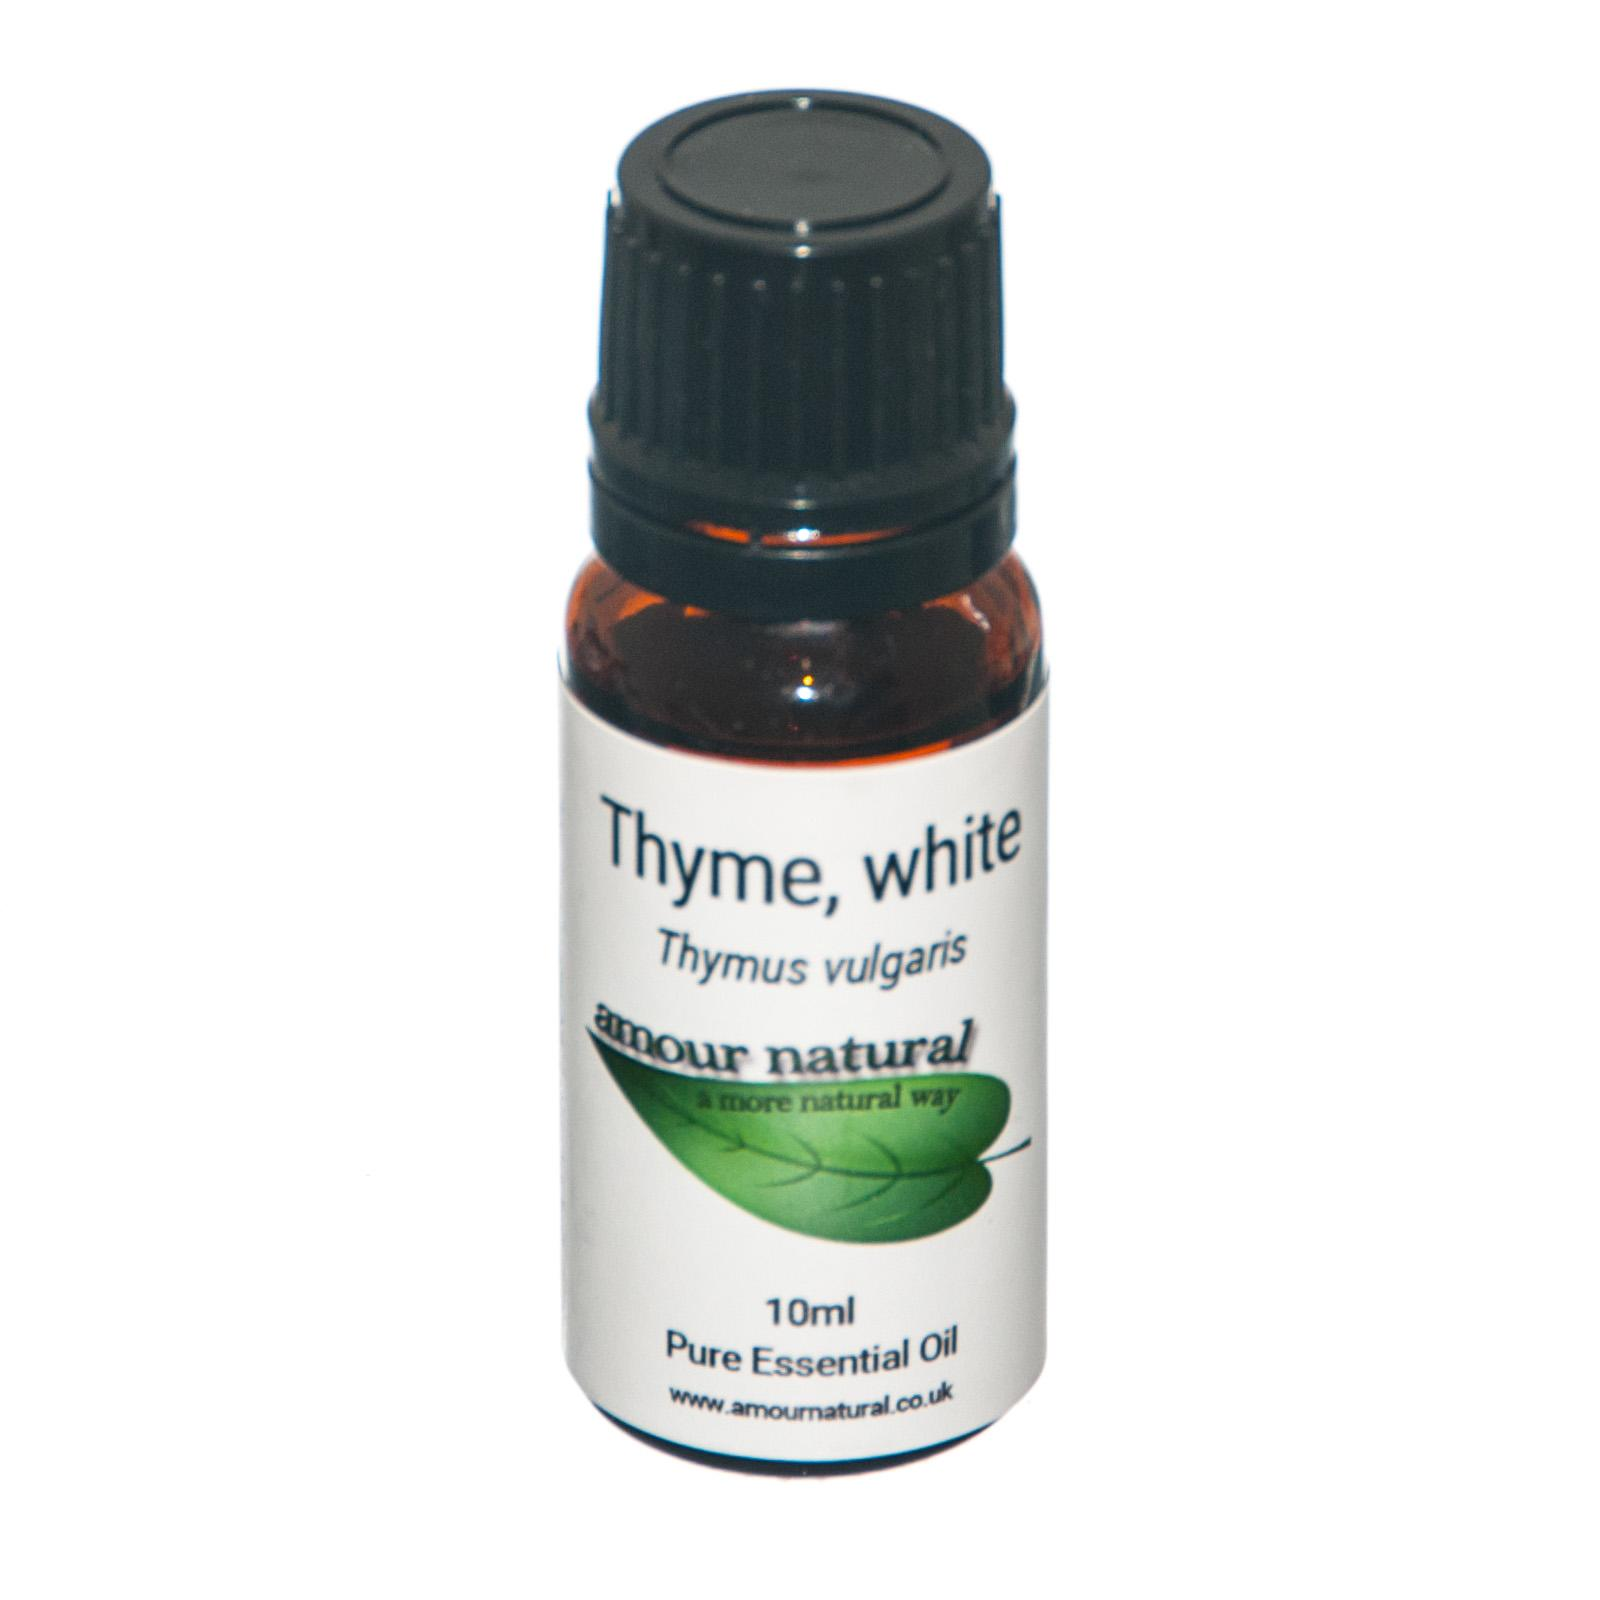 1 x 10 ml bottle of  Thyme (White) Essential Oil